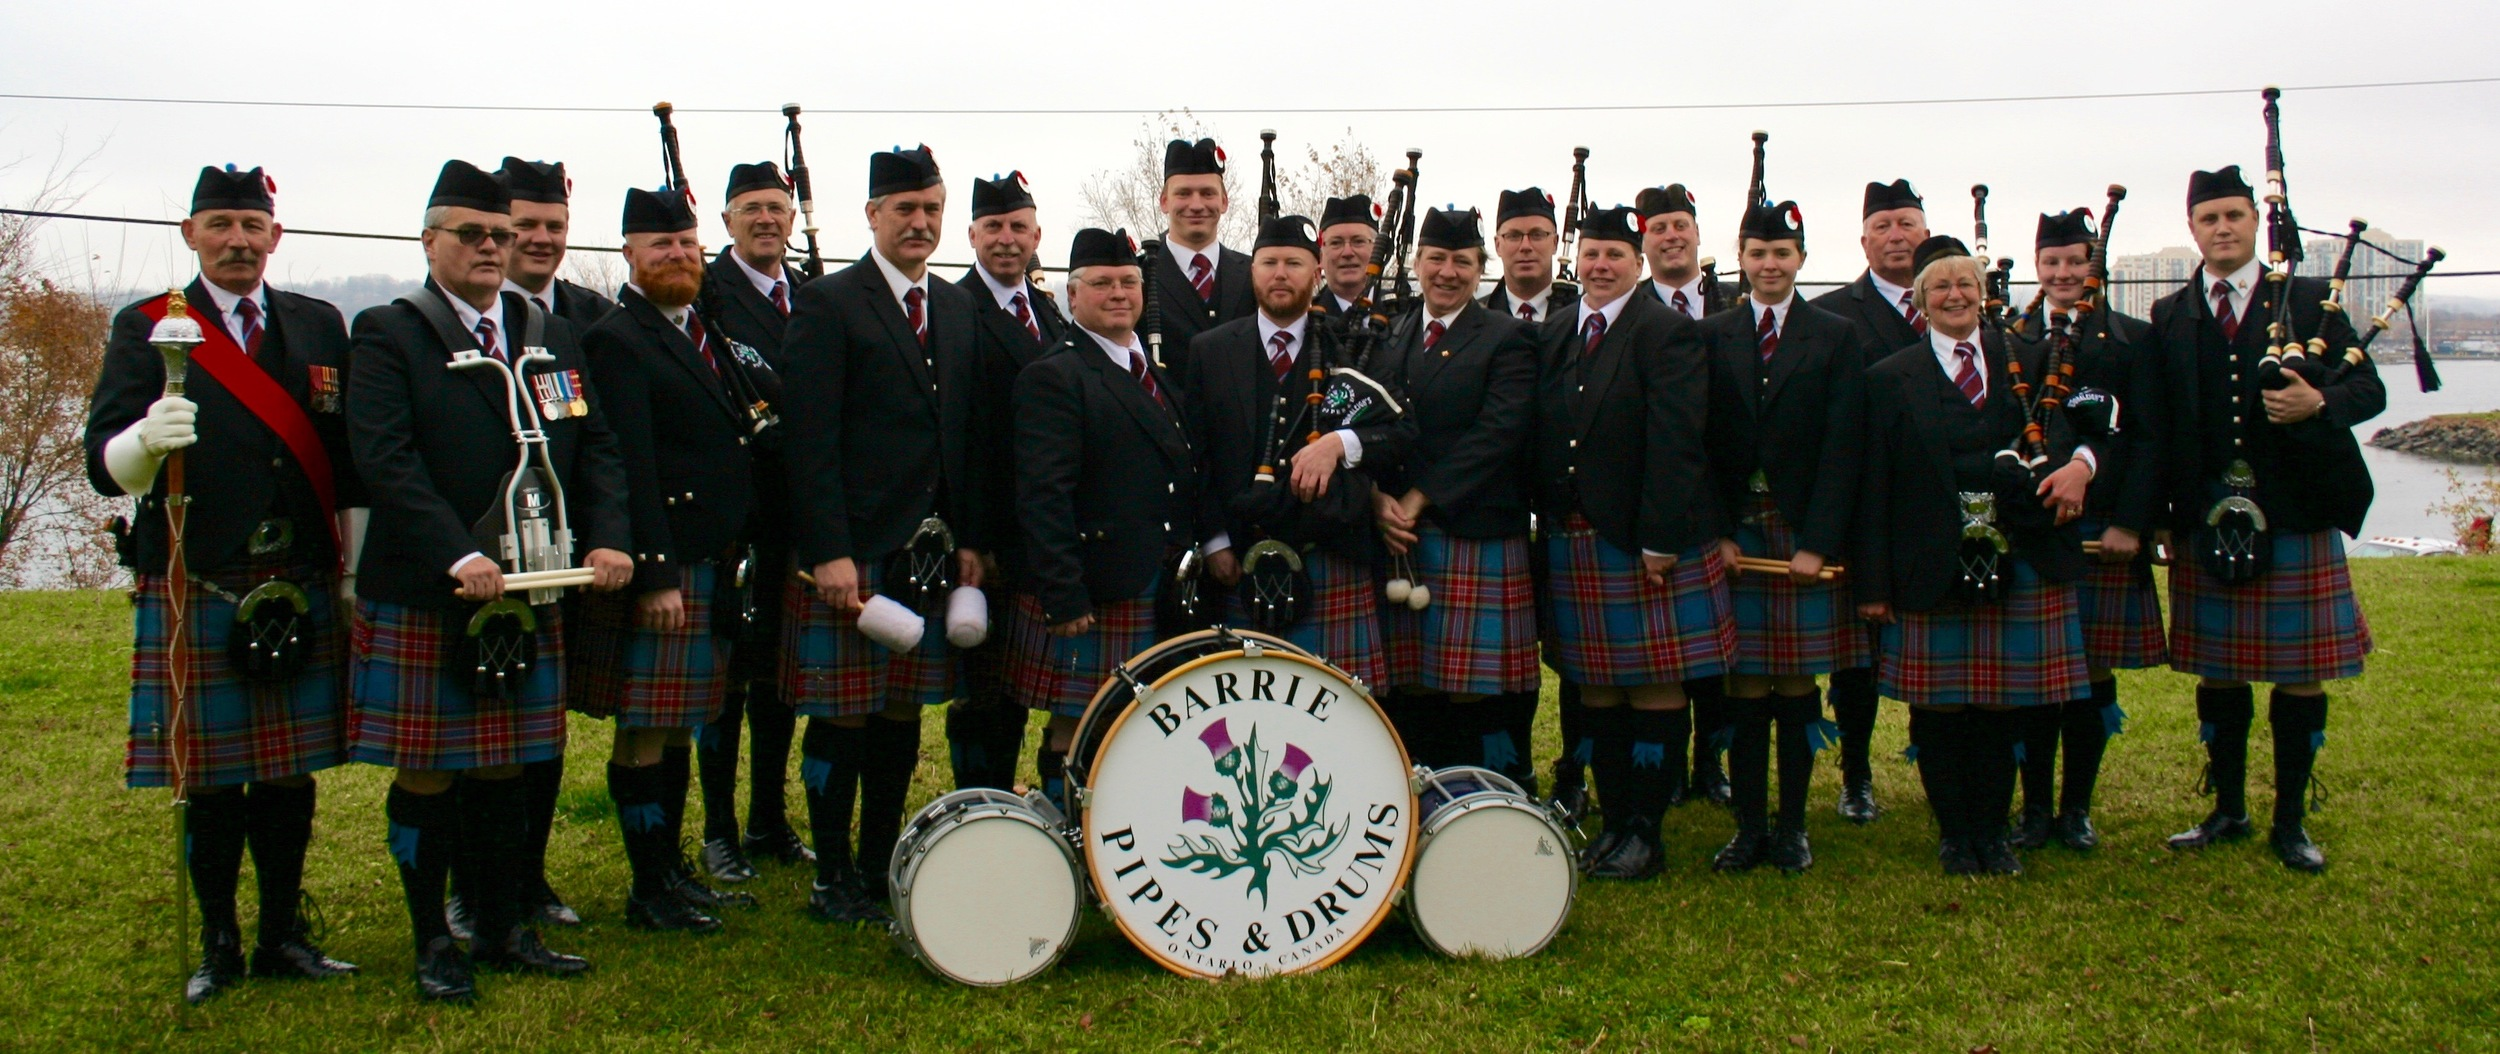 The Band after Barrie Remembrance Day Parade